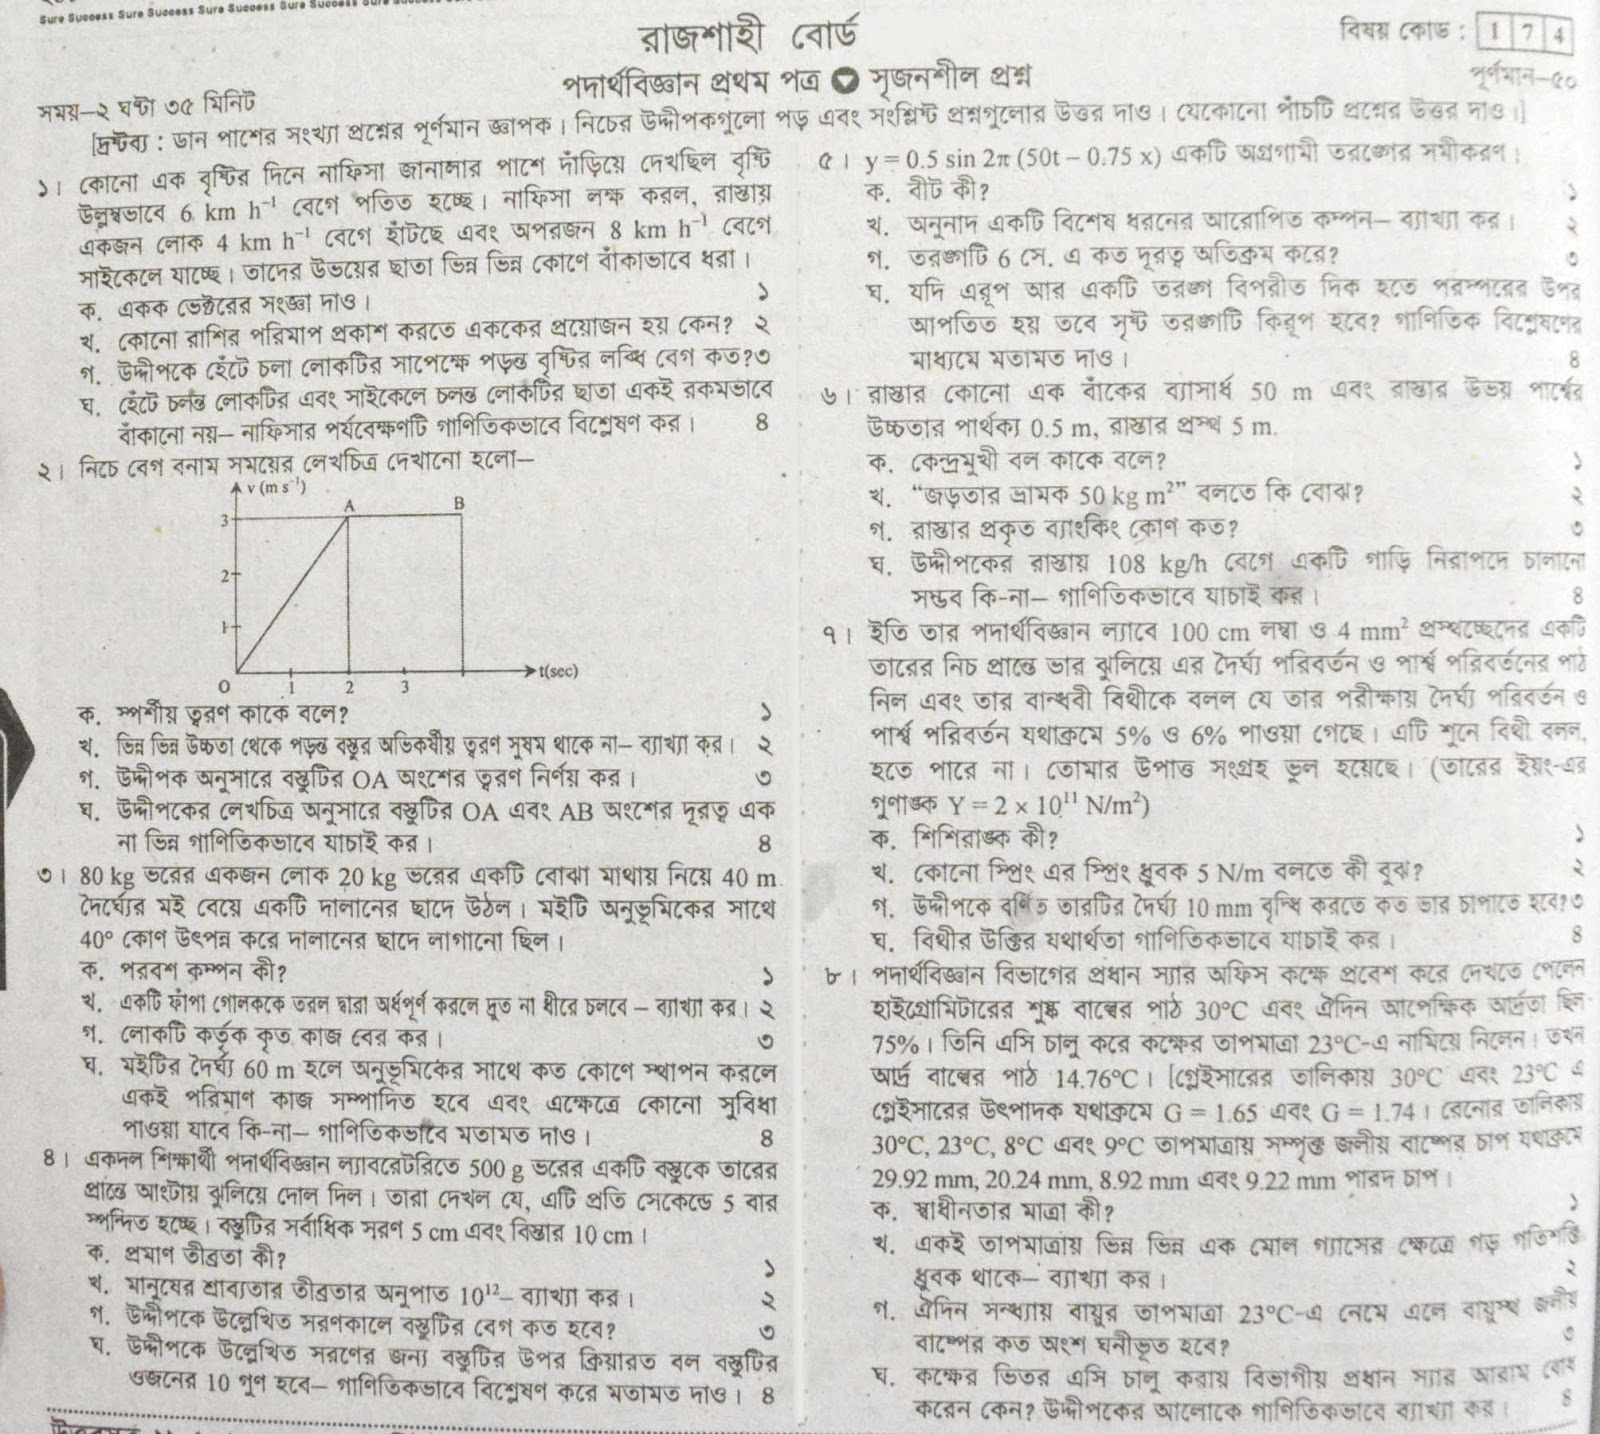 hsc Physics 1st Paper suggestion, exam question paper, model question, mcq question, question pattern, preparation for dhaka board, all boards